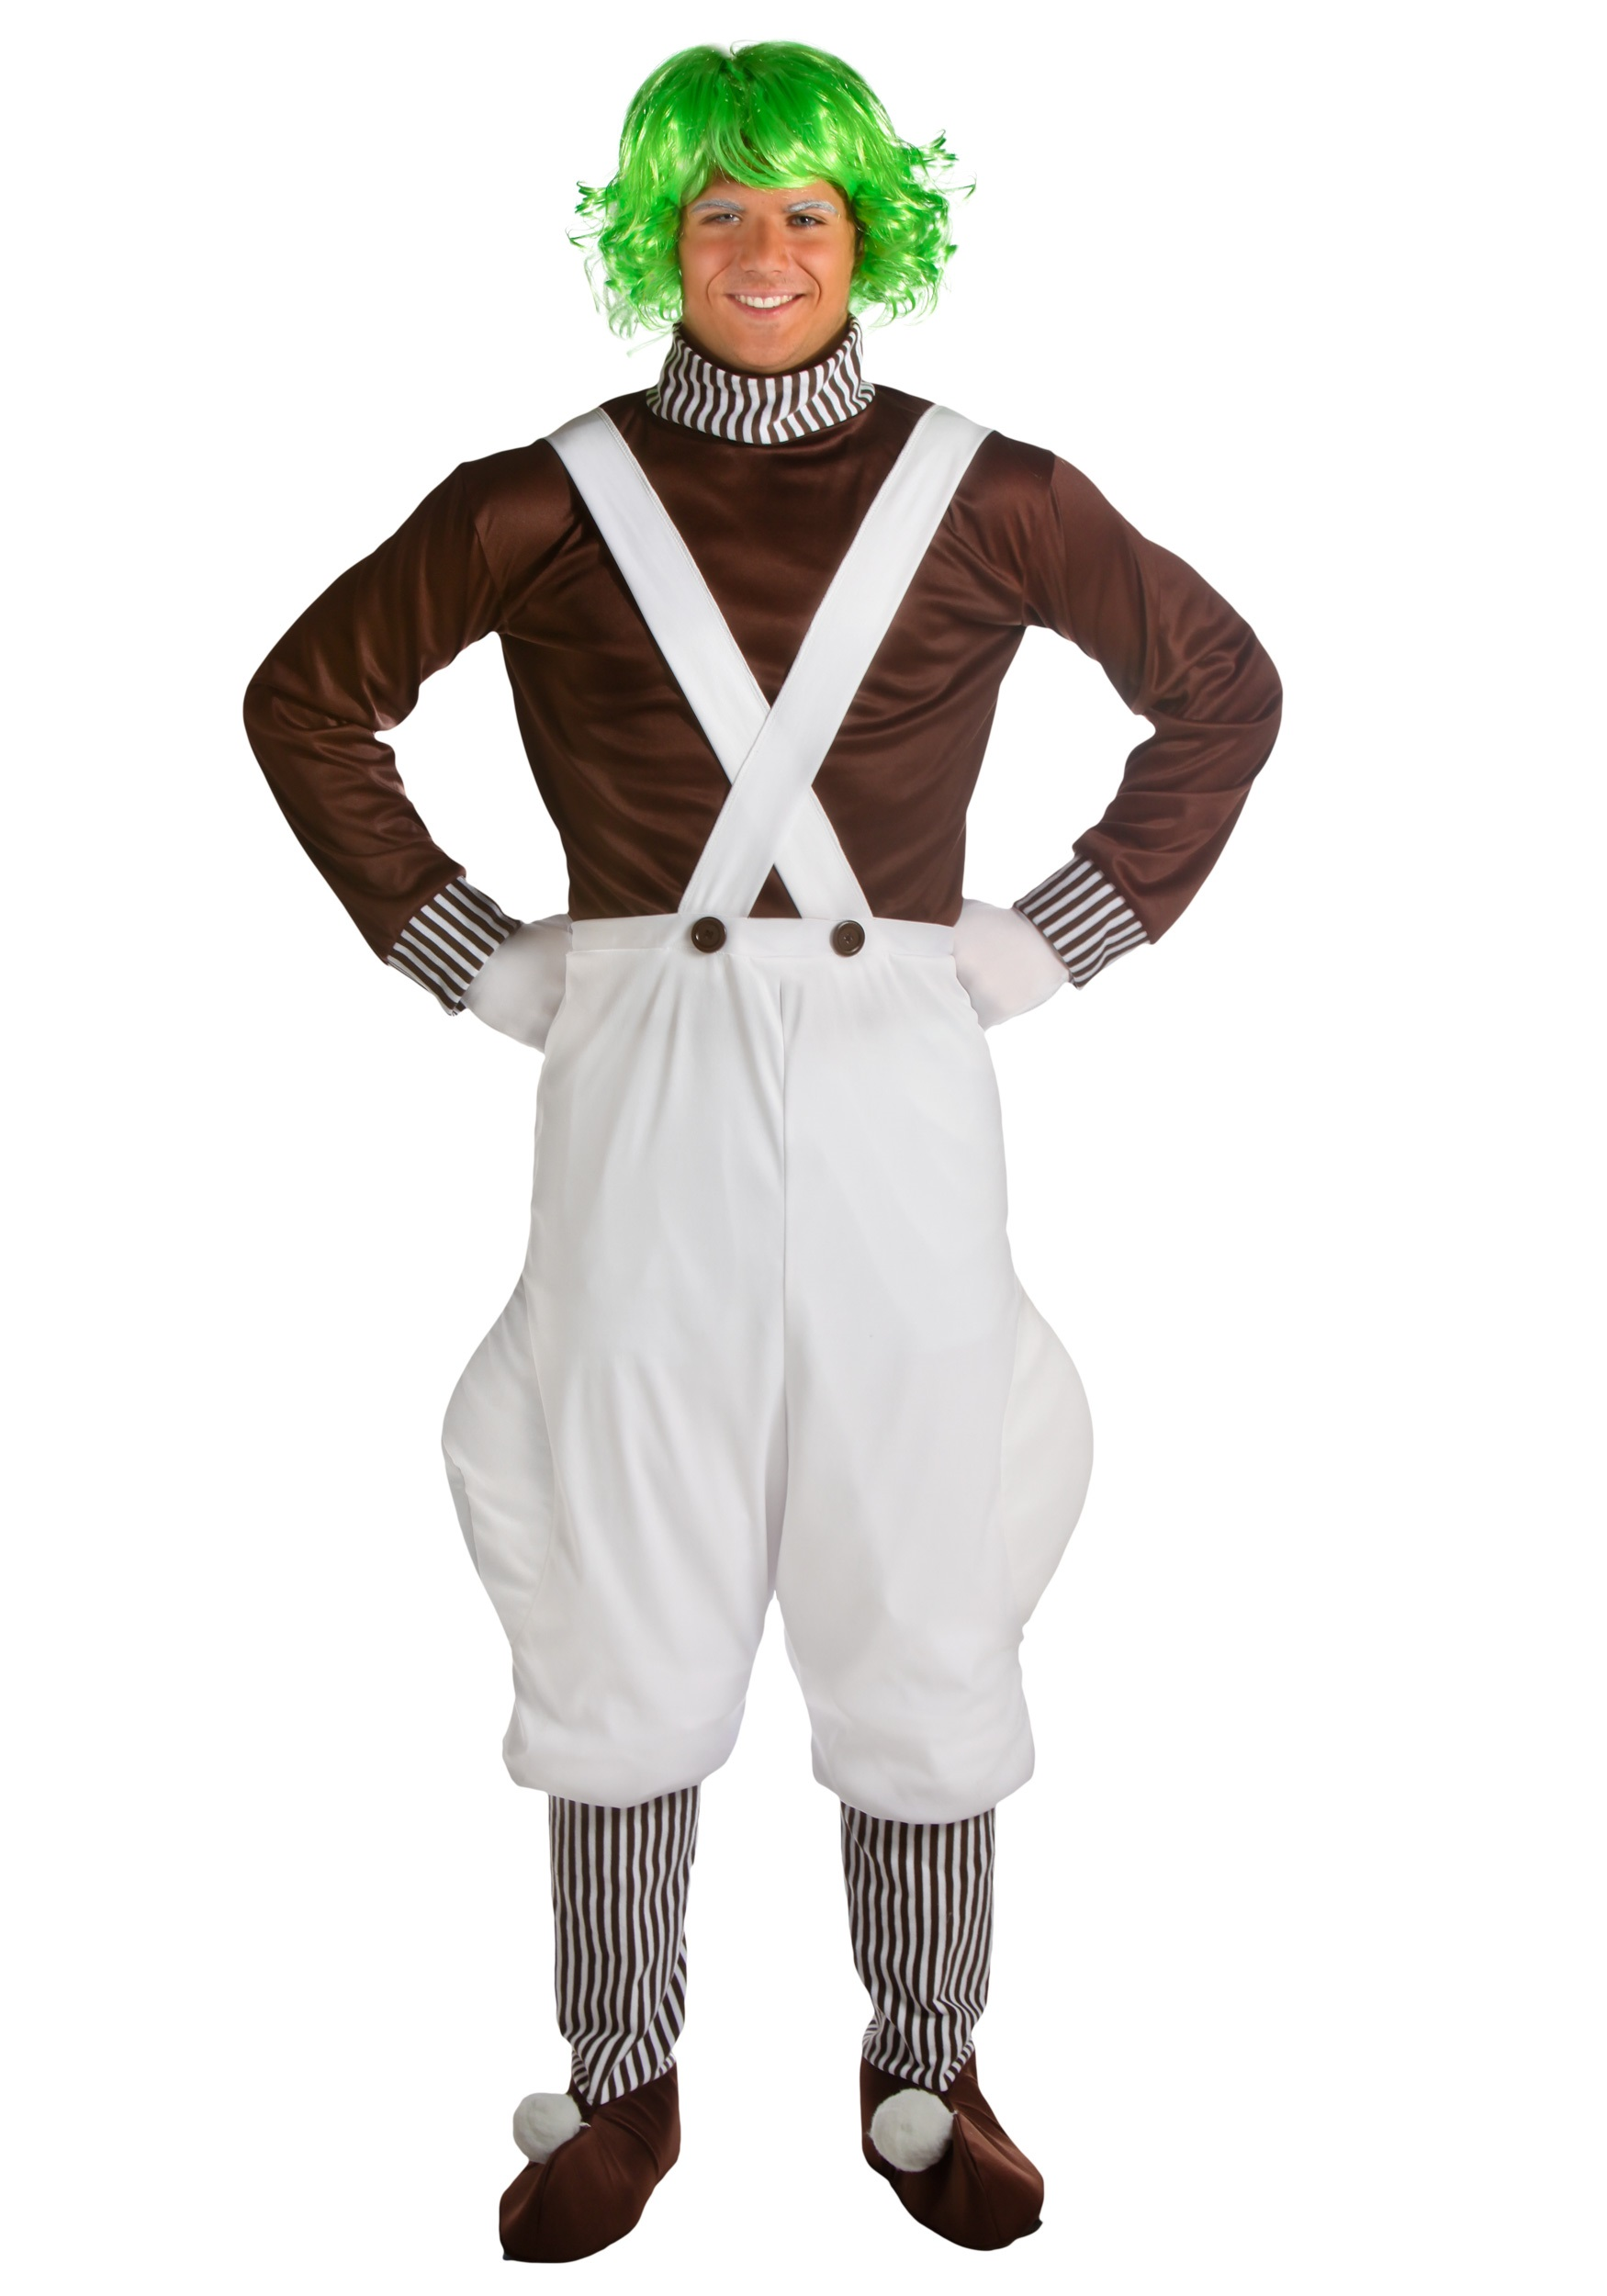 Costume Ideas For Willy Wonka Willy Wonka Worker Costume